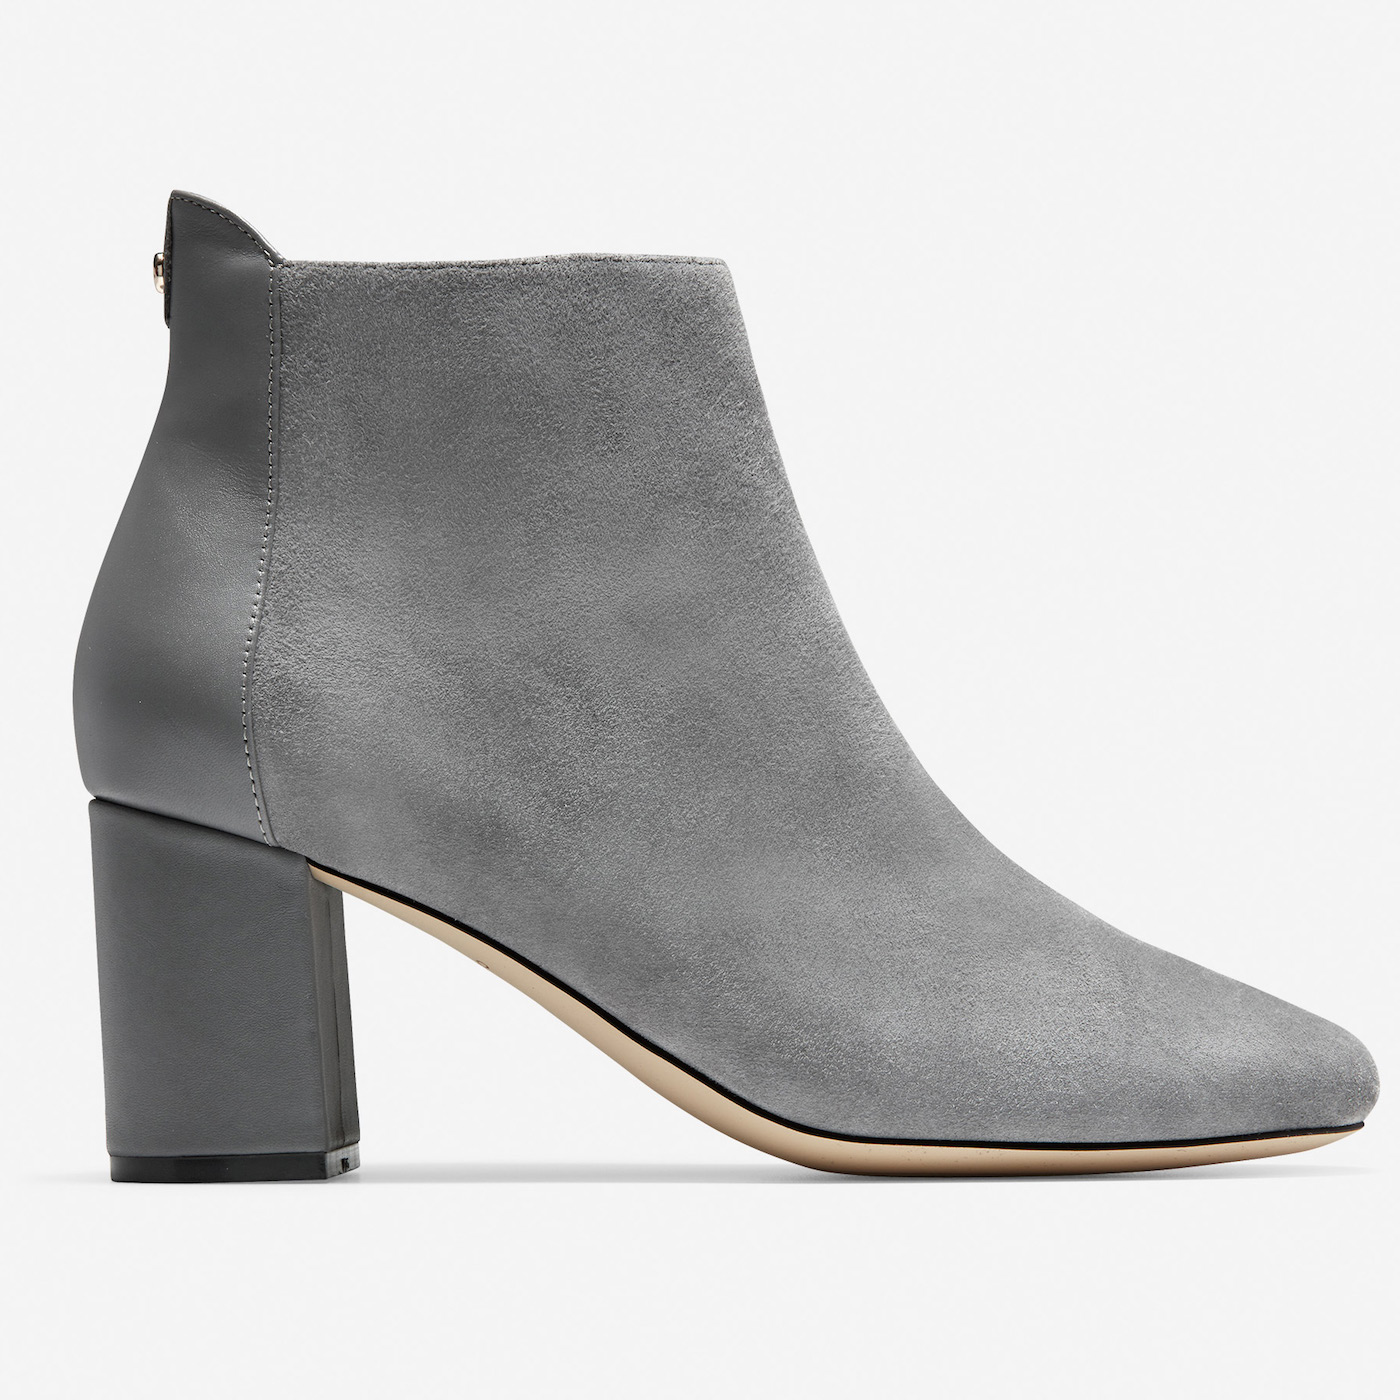 7 Must-Have Ankle Booties to Shop This Fall